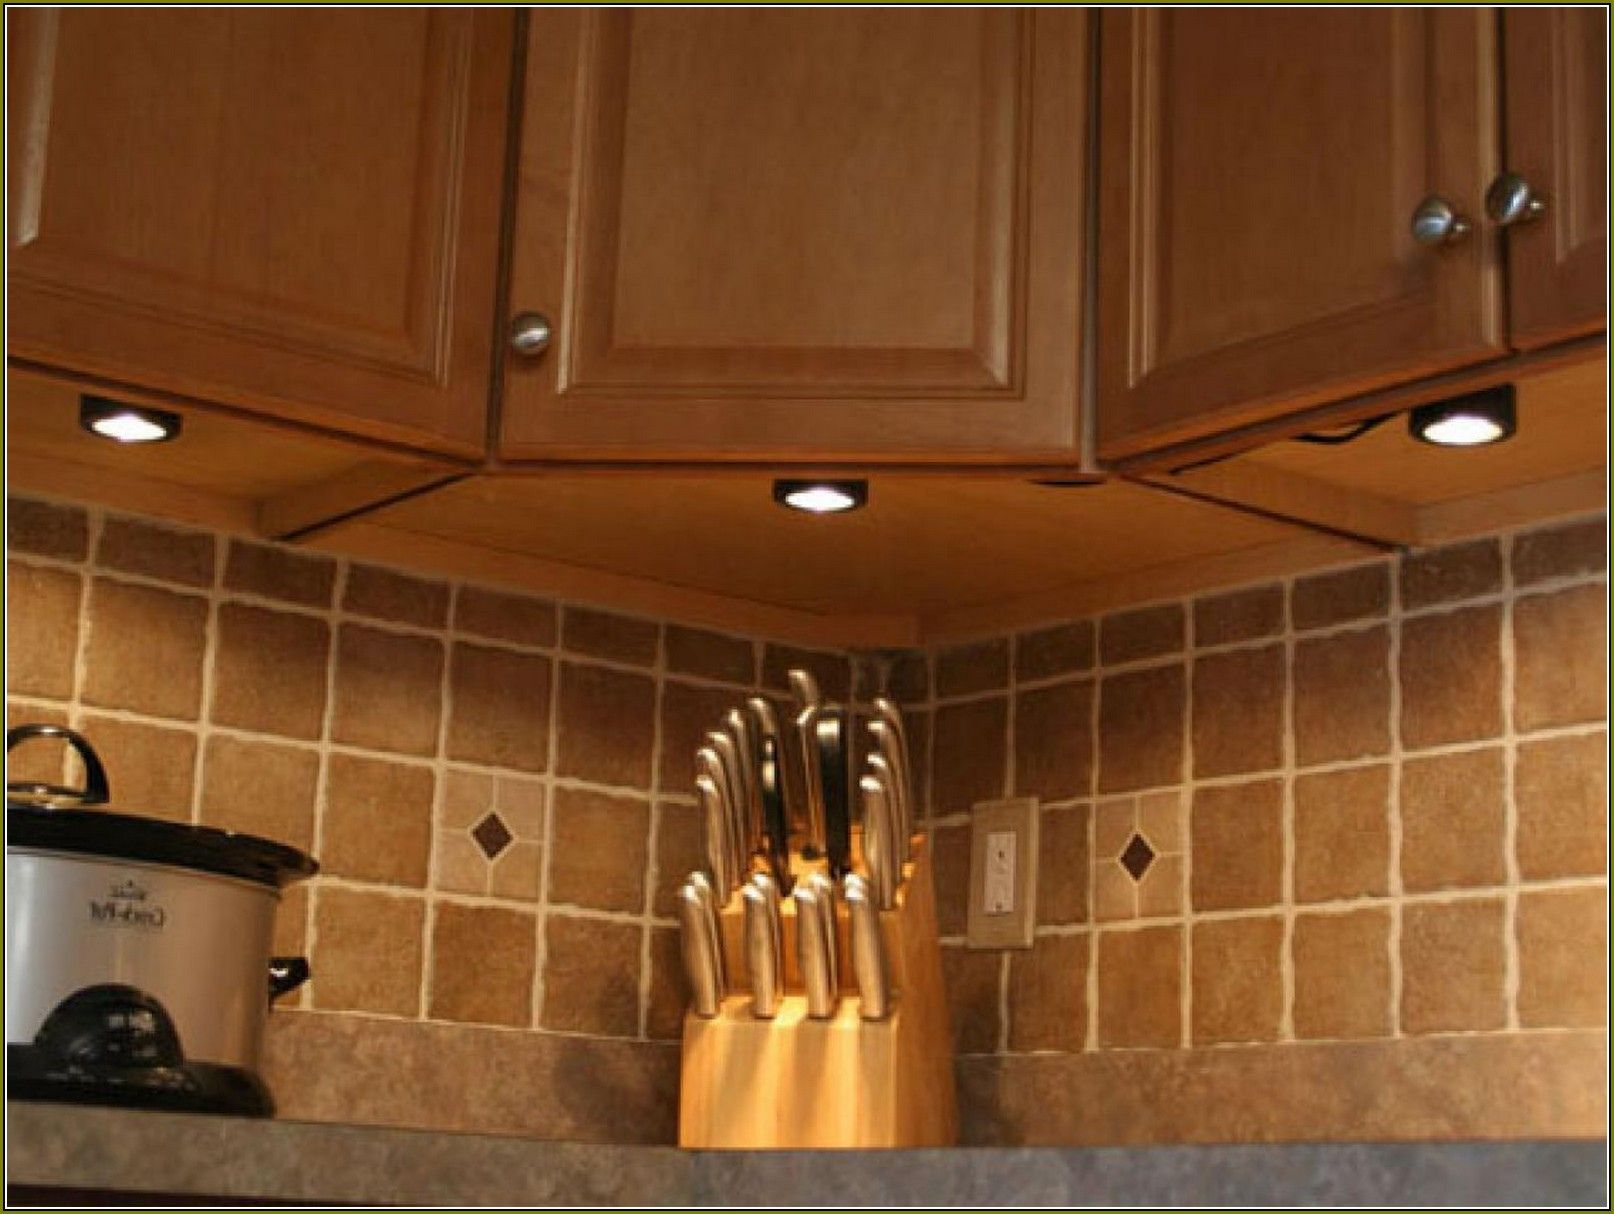 Battery Under Cabinet Lighting Kitchen - top Rated Interior Paint ...